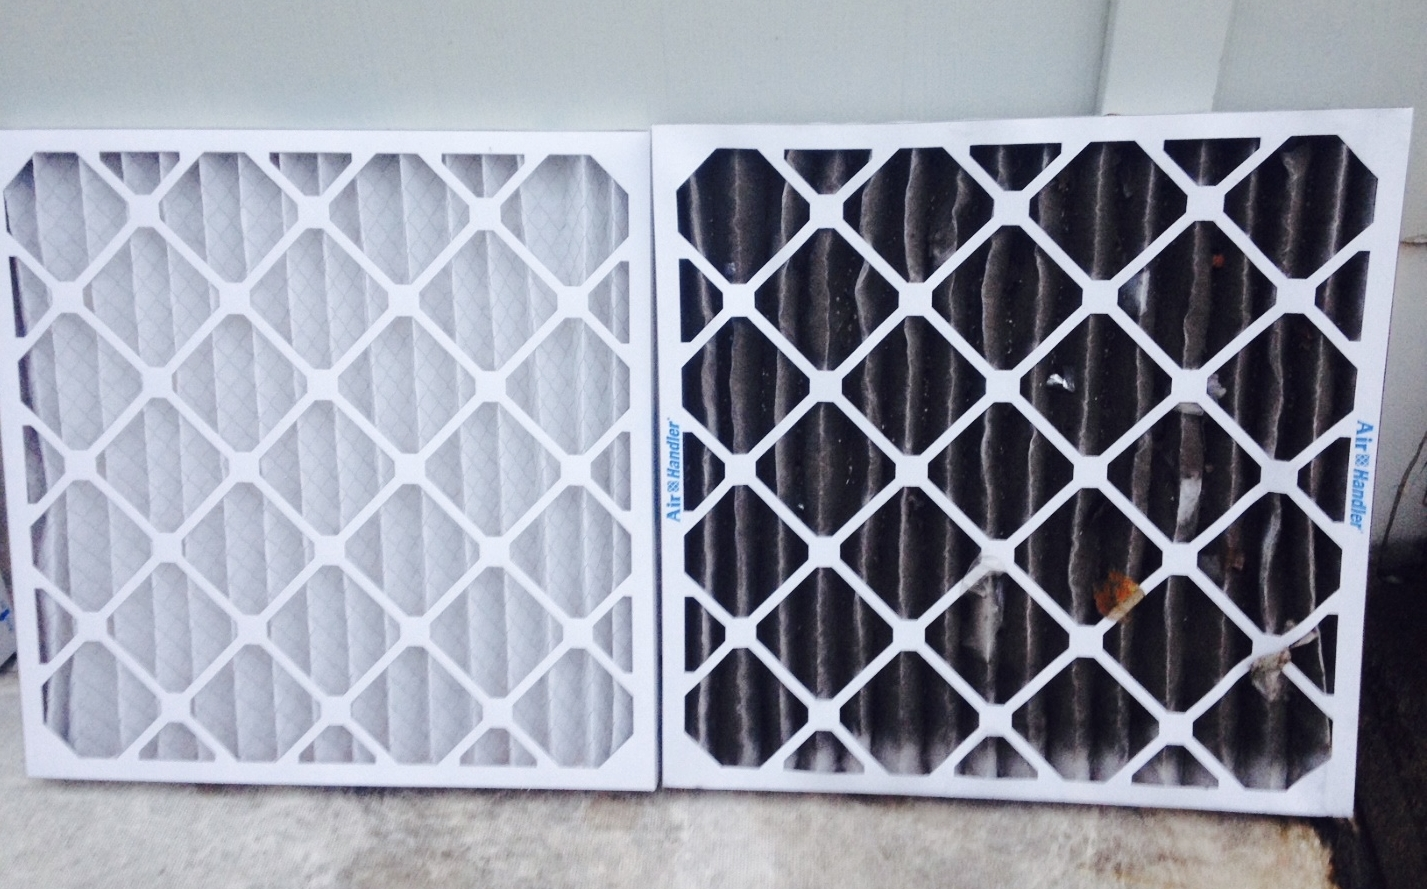 Filter replaced after only one week in HVAC unit one block away from General Iron.